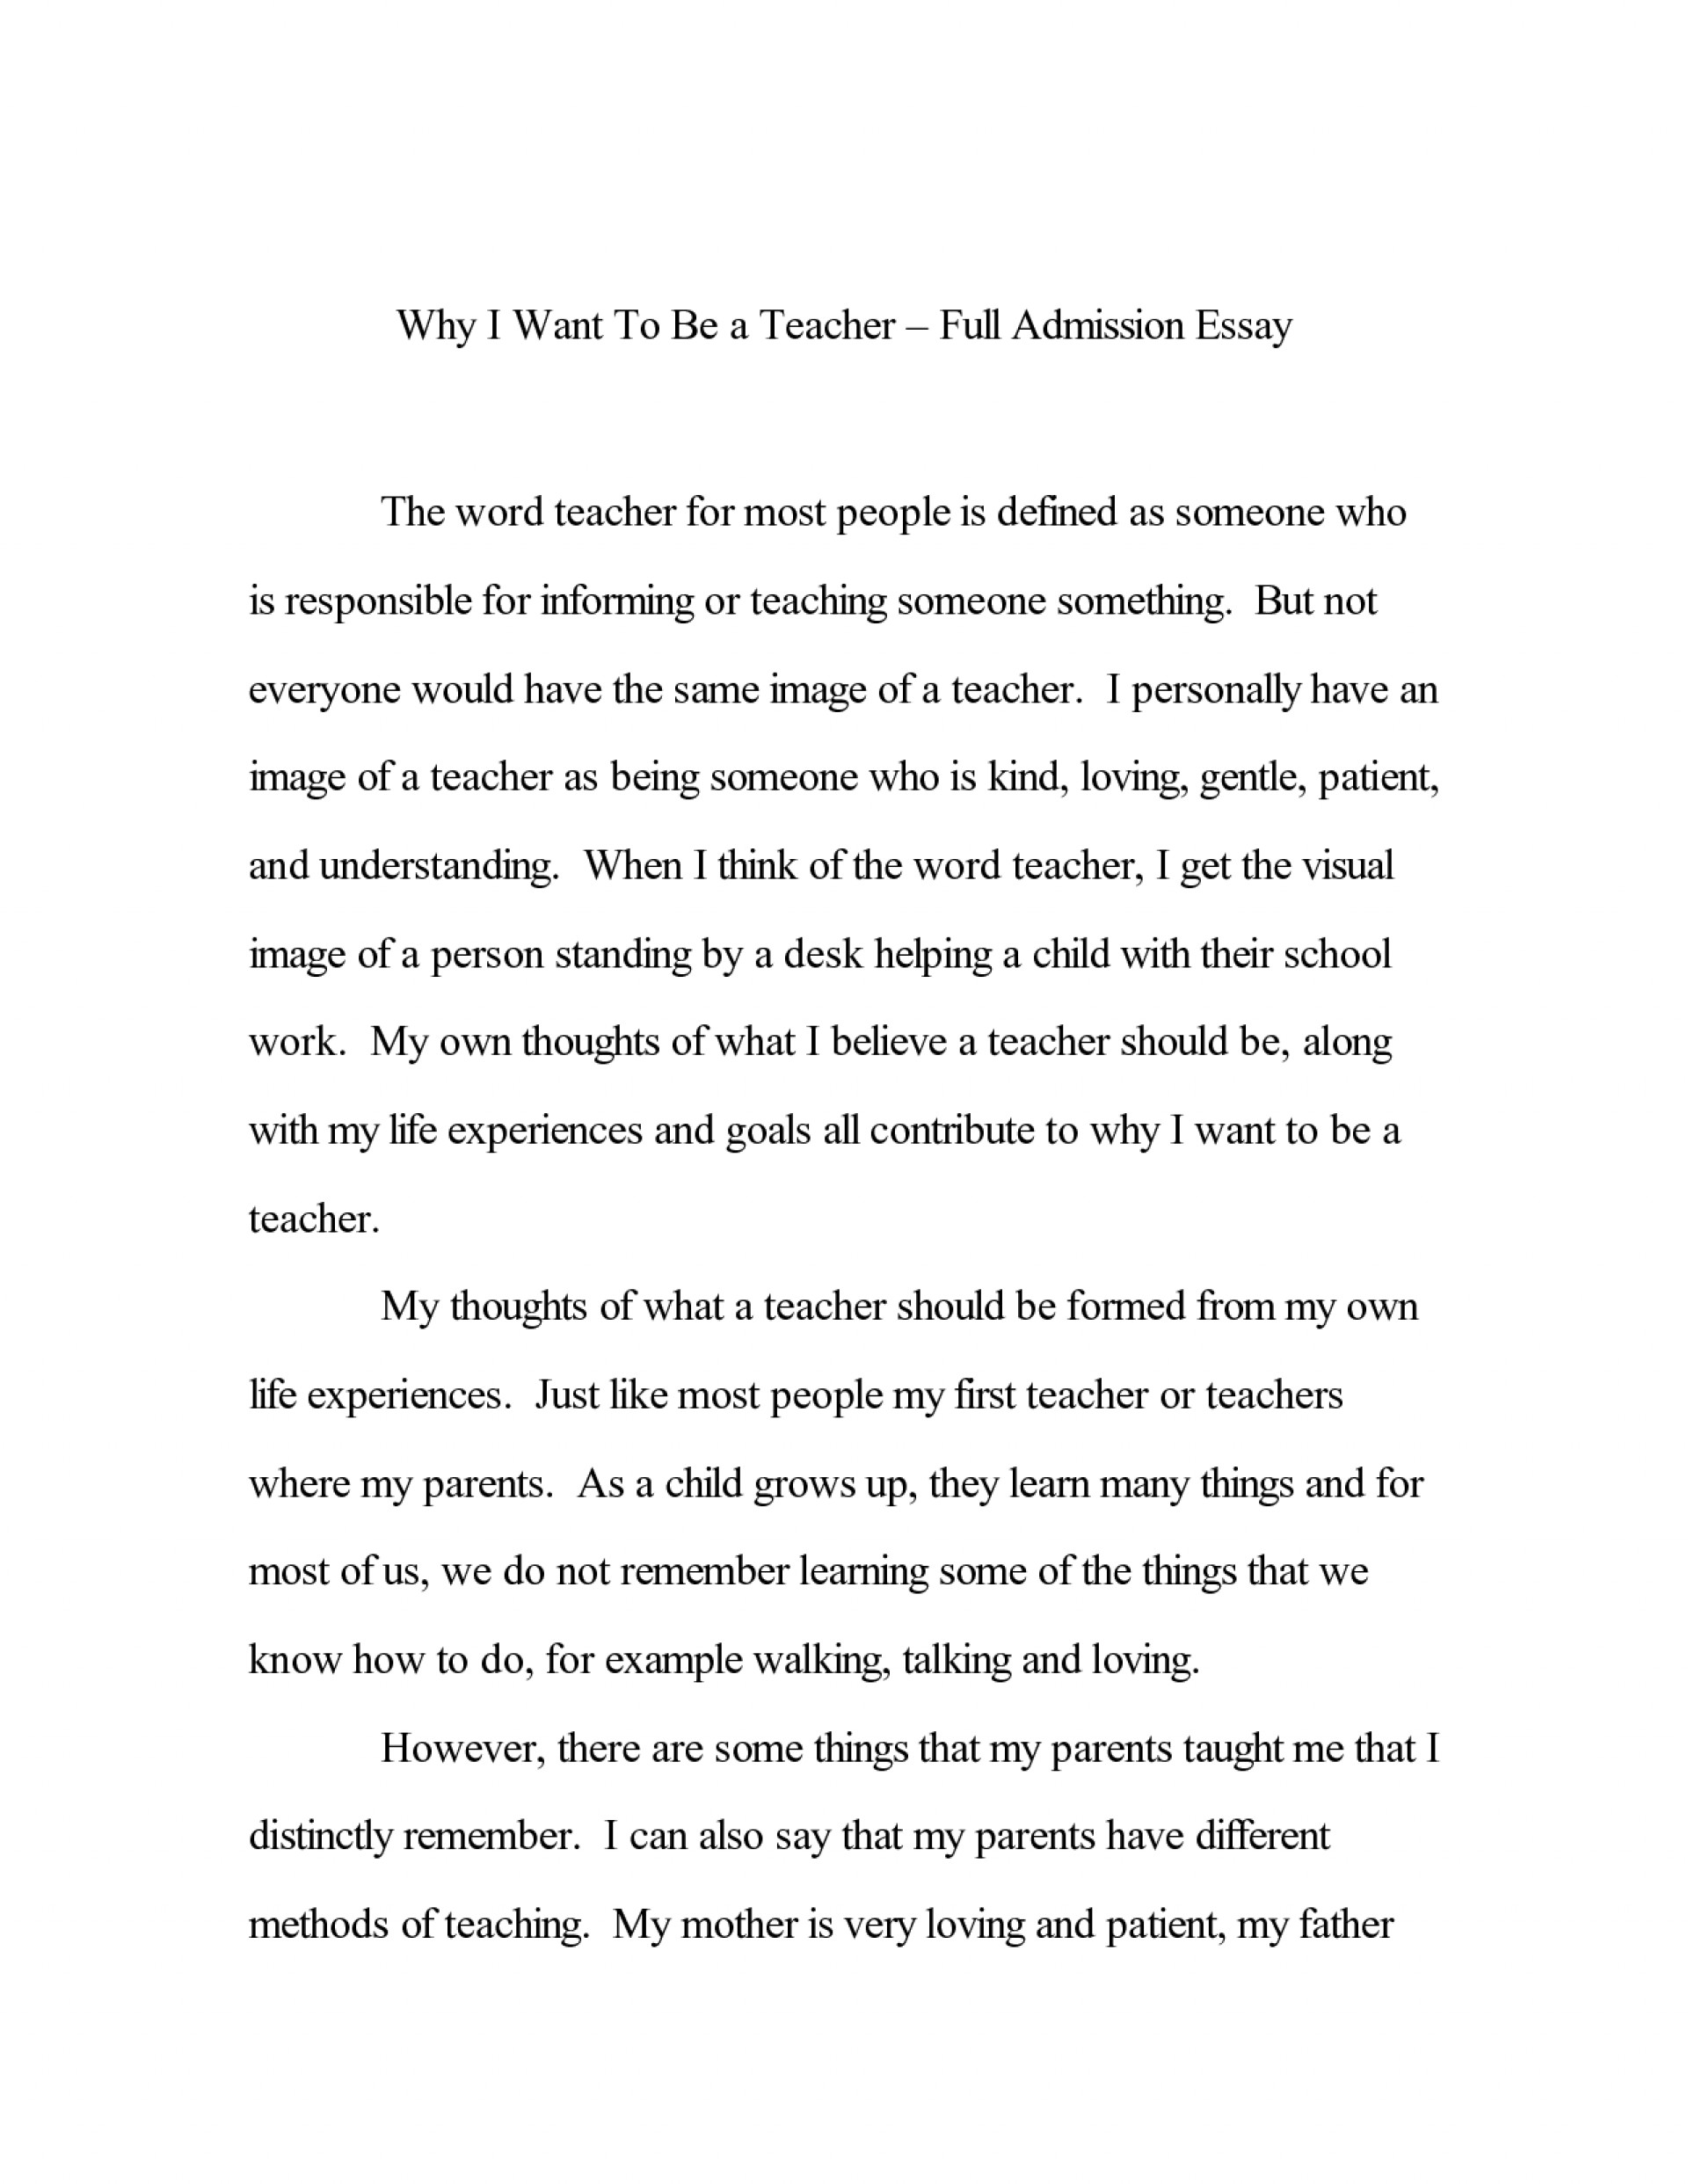 006 Zcwrpapbvx College Entry Essay Amazing Admissions Tips Application Personal Statement 12 Admission Essays That Worked 1920